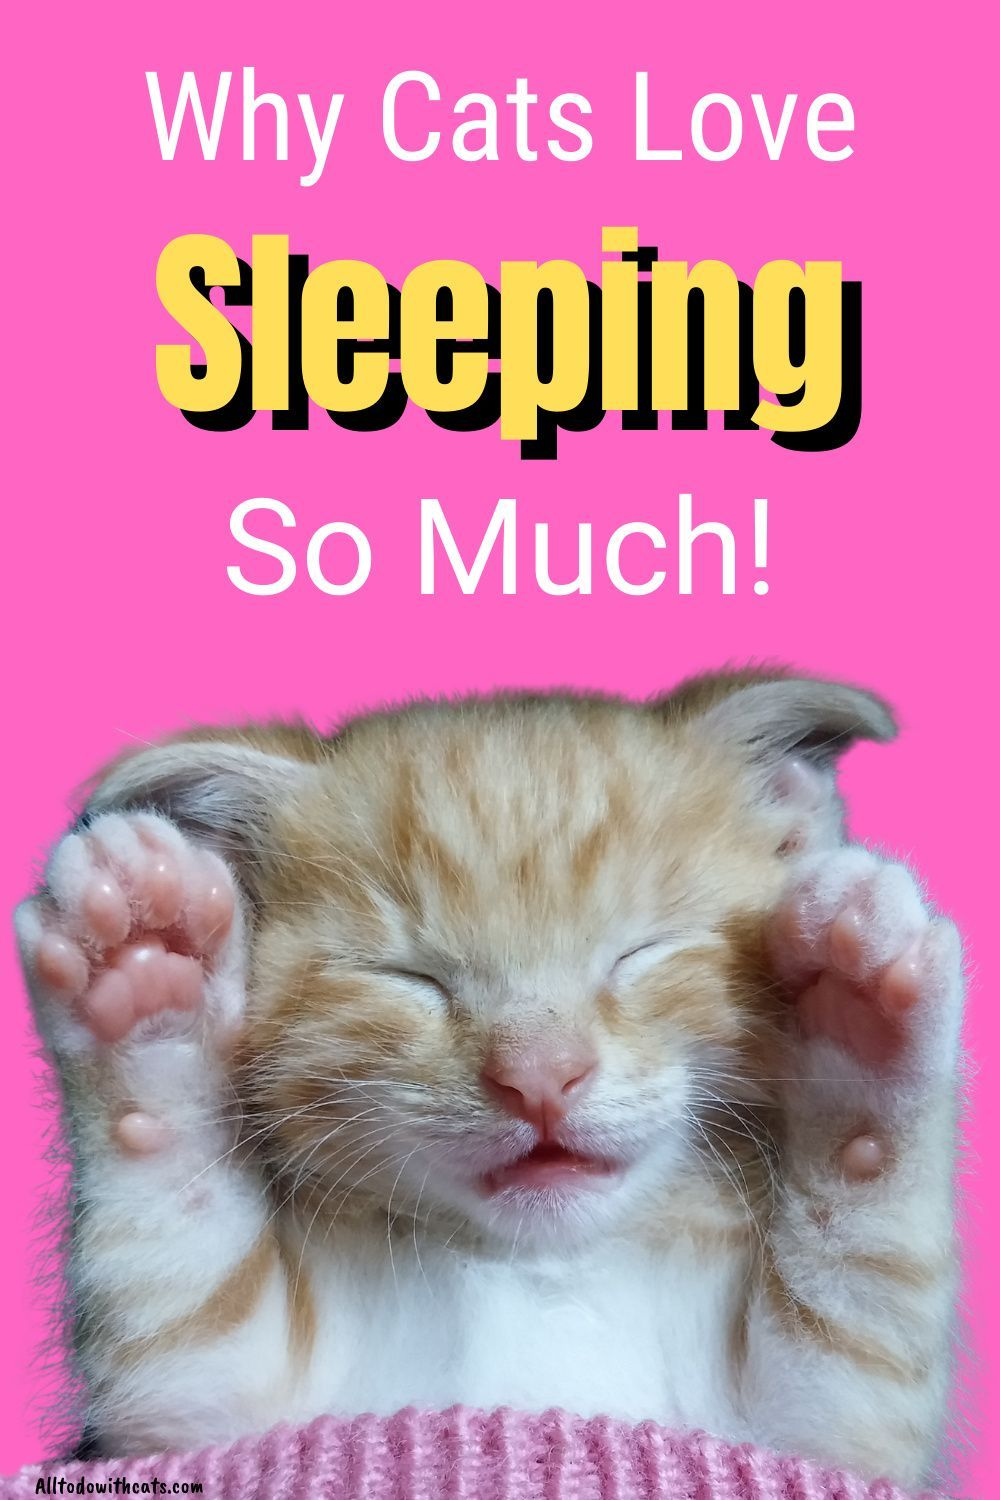 All To Do With Cats All You Need For Cat Crazy People In 2020 Cat Parenting Cats Cat Facts